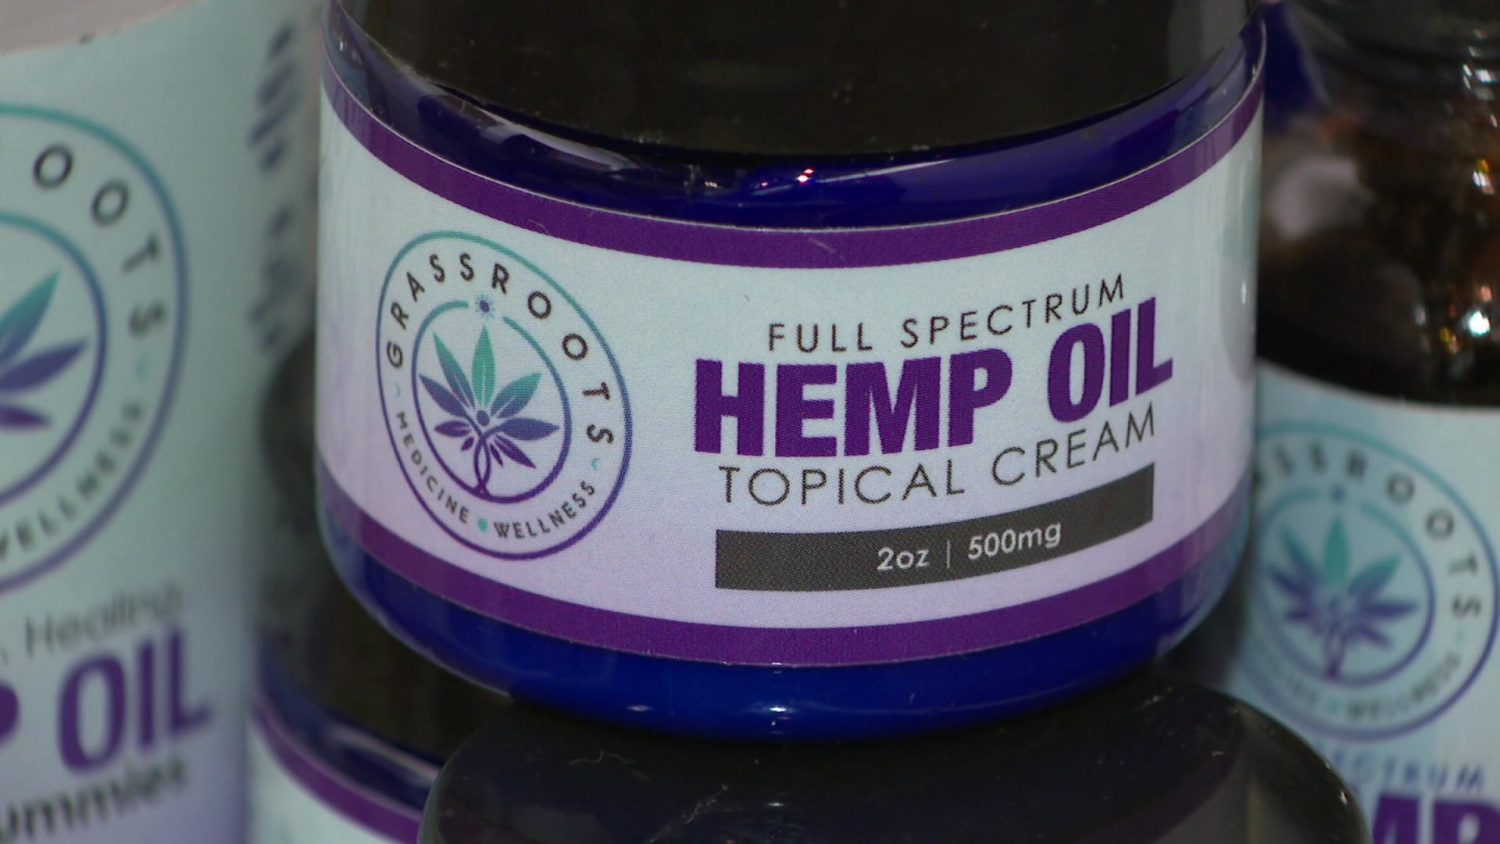 With Hemp Now Legal In Florida, Many Look To Cash In On CBD Oil - CBS Miami